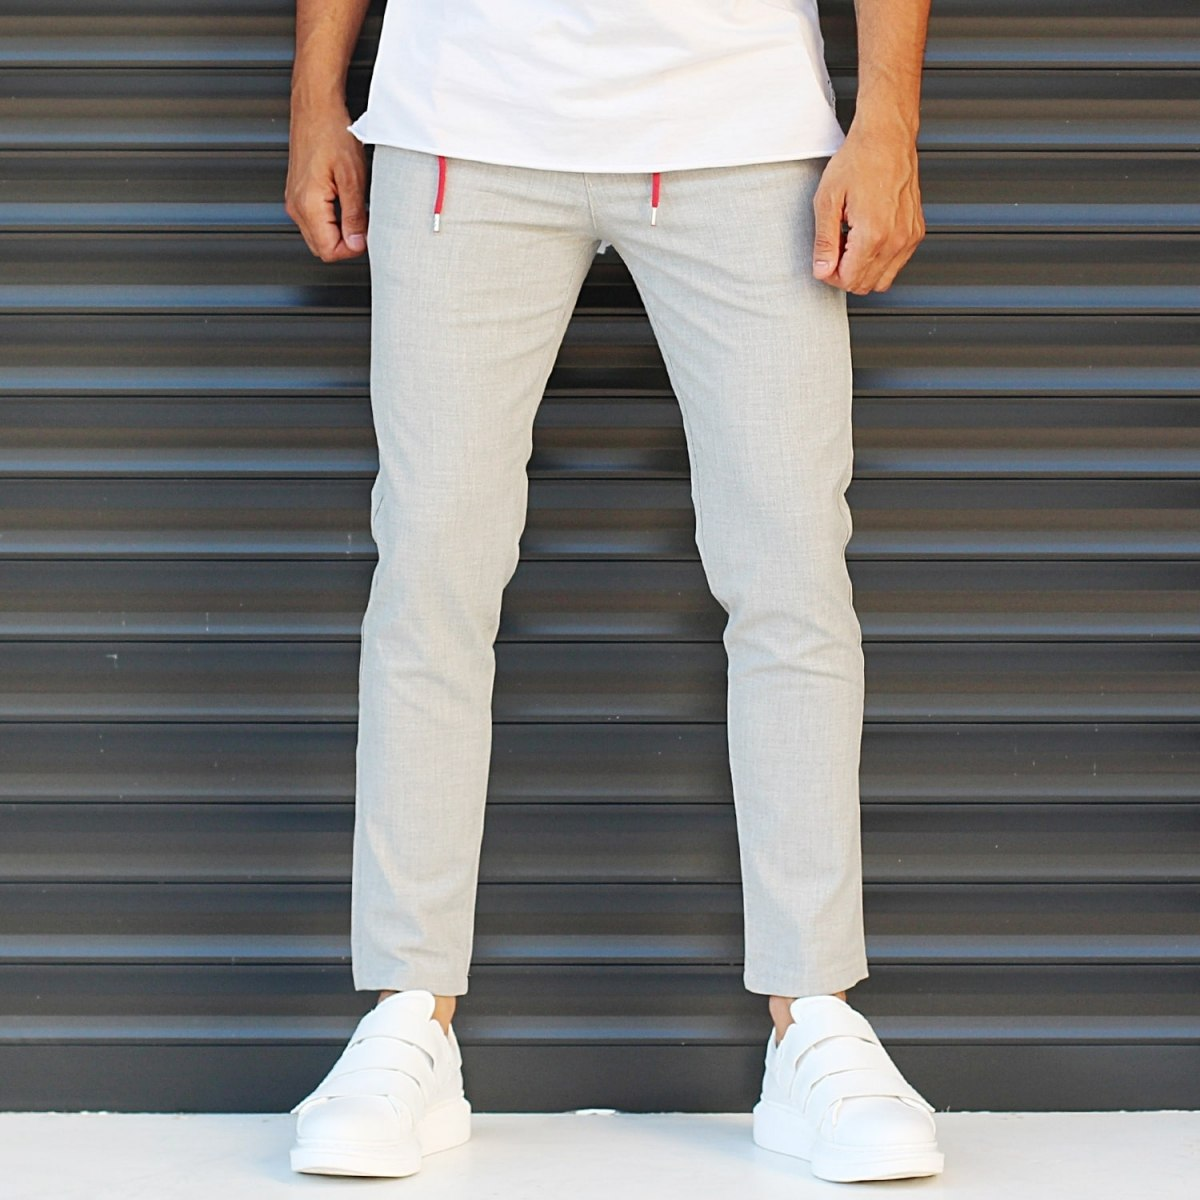 Men's Slim Fit Lycra Sport Pants Cream Mv Premium Brand - 1